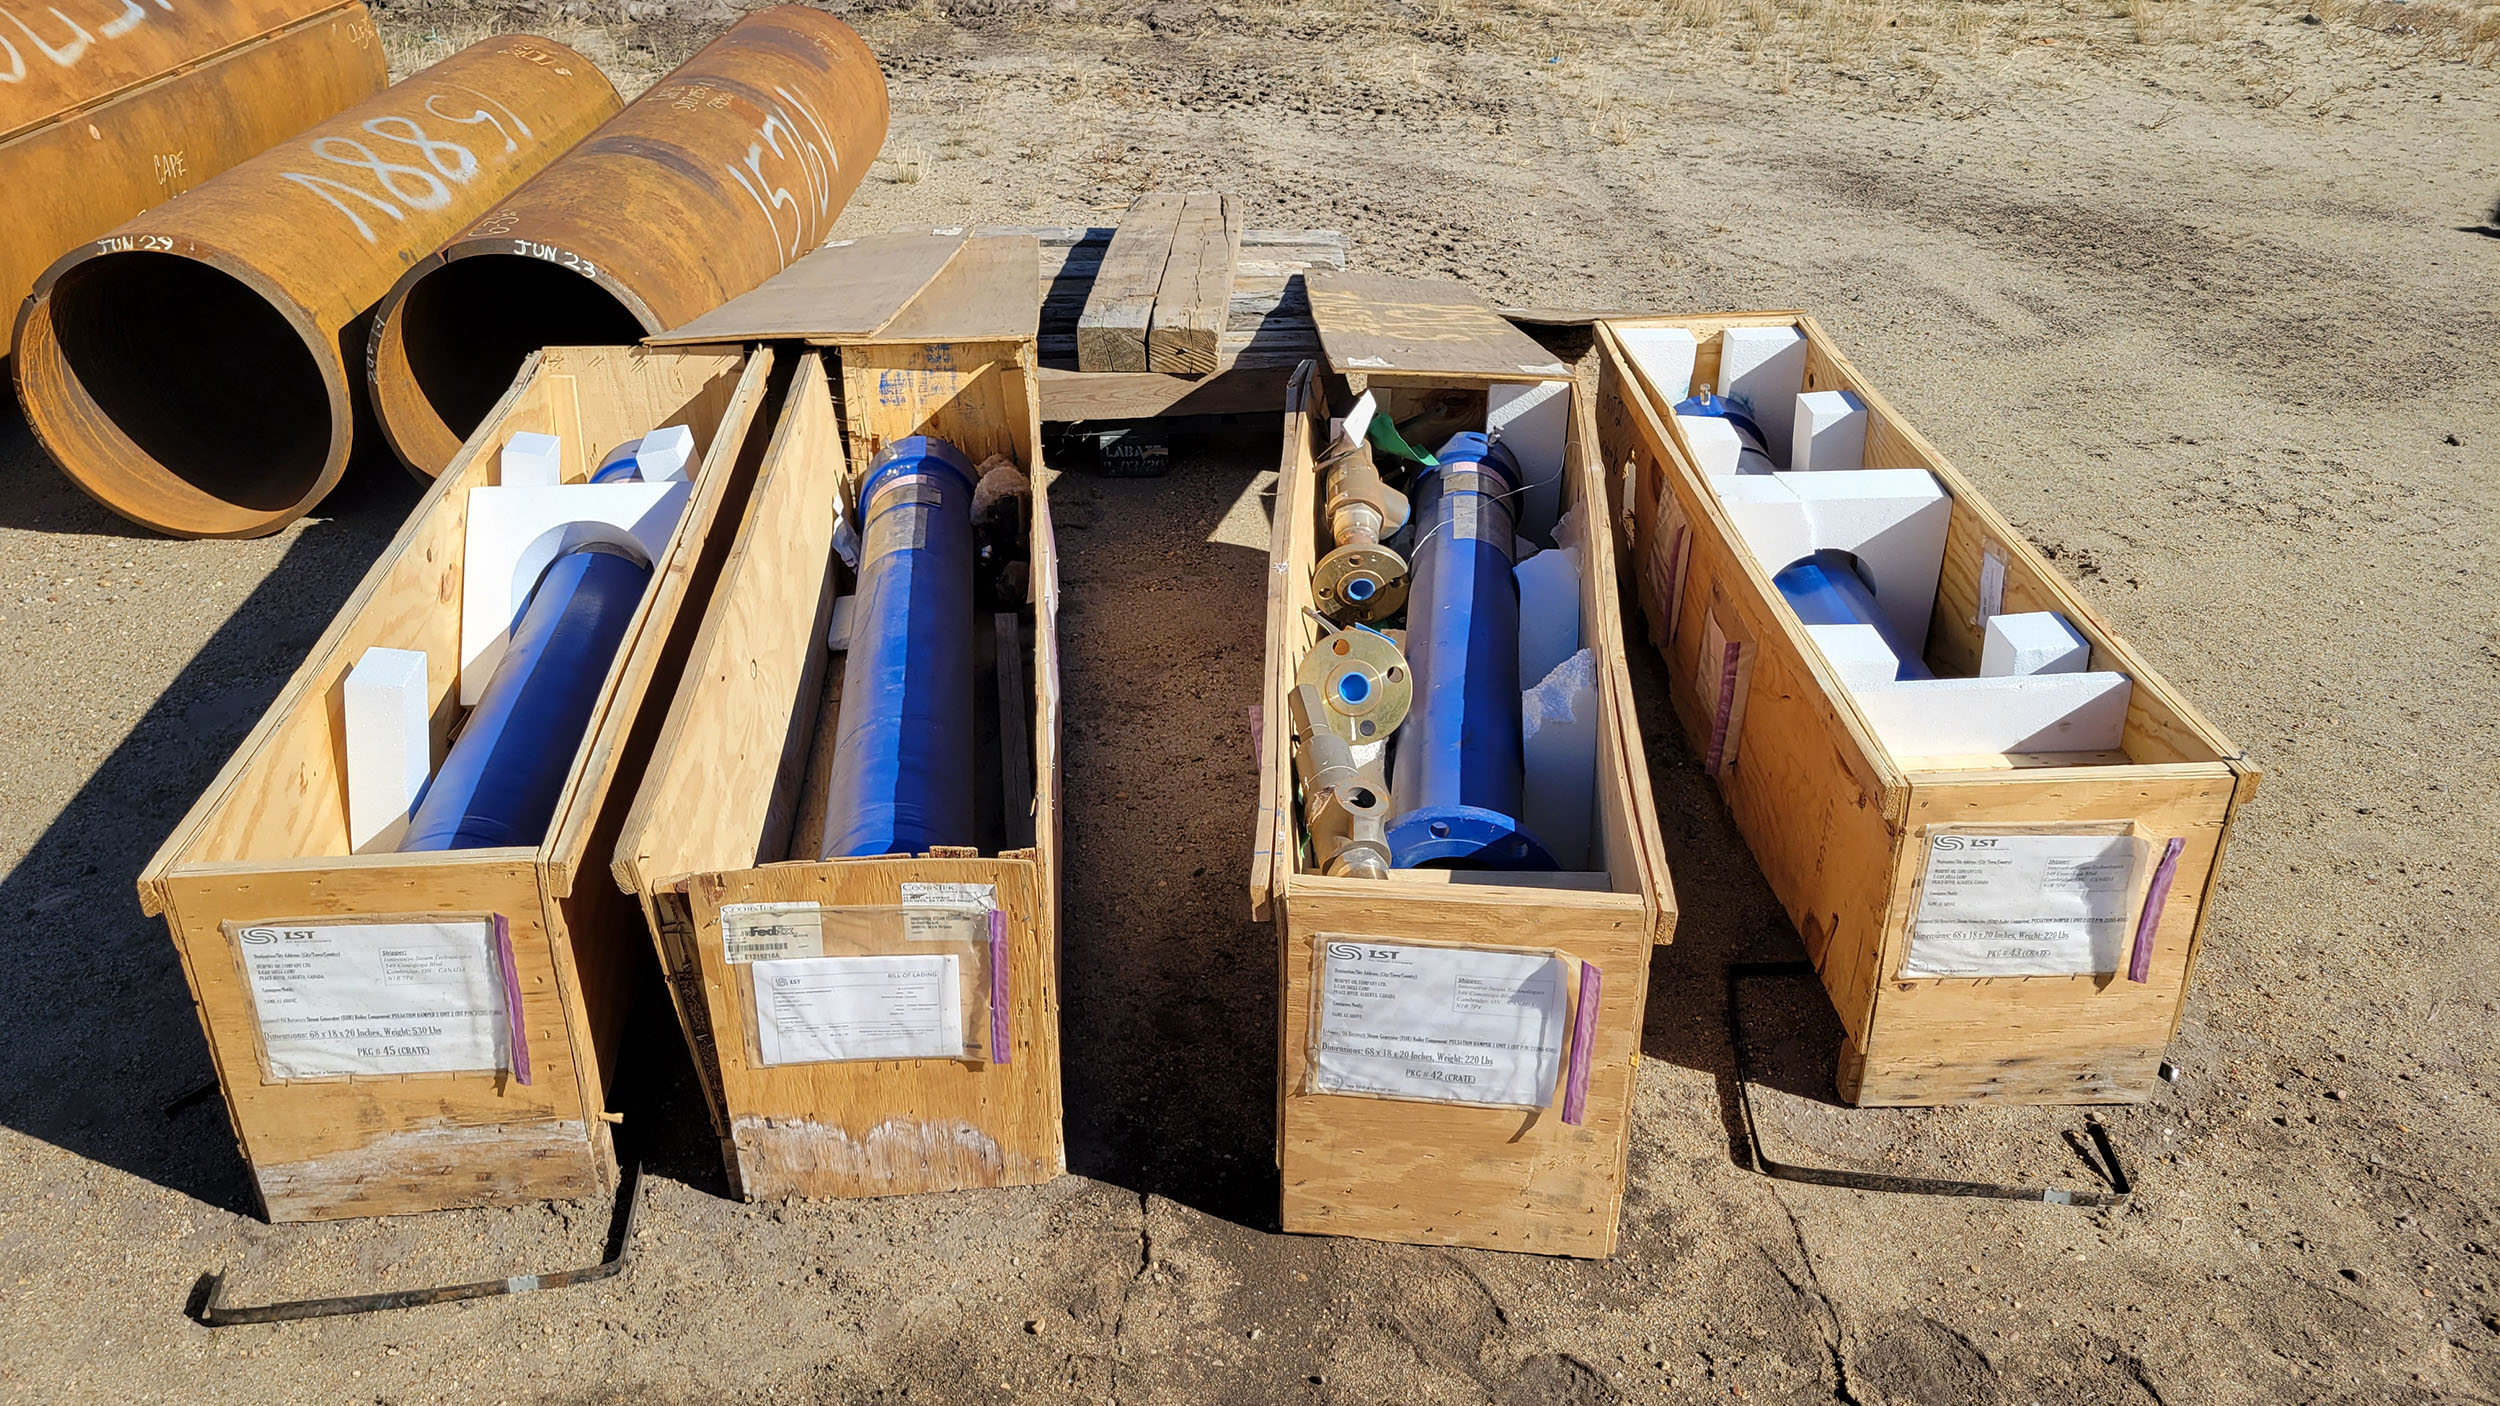 New / Never-used 300HP National 300Q-5M Unitized / Mini Skid Pumps for sale in Alberta Canada surplus oilfield oil and gas equipment 10